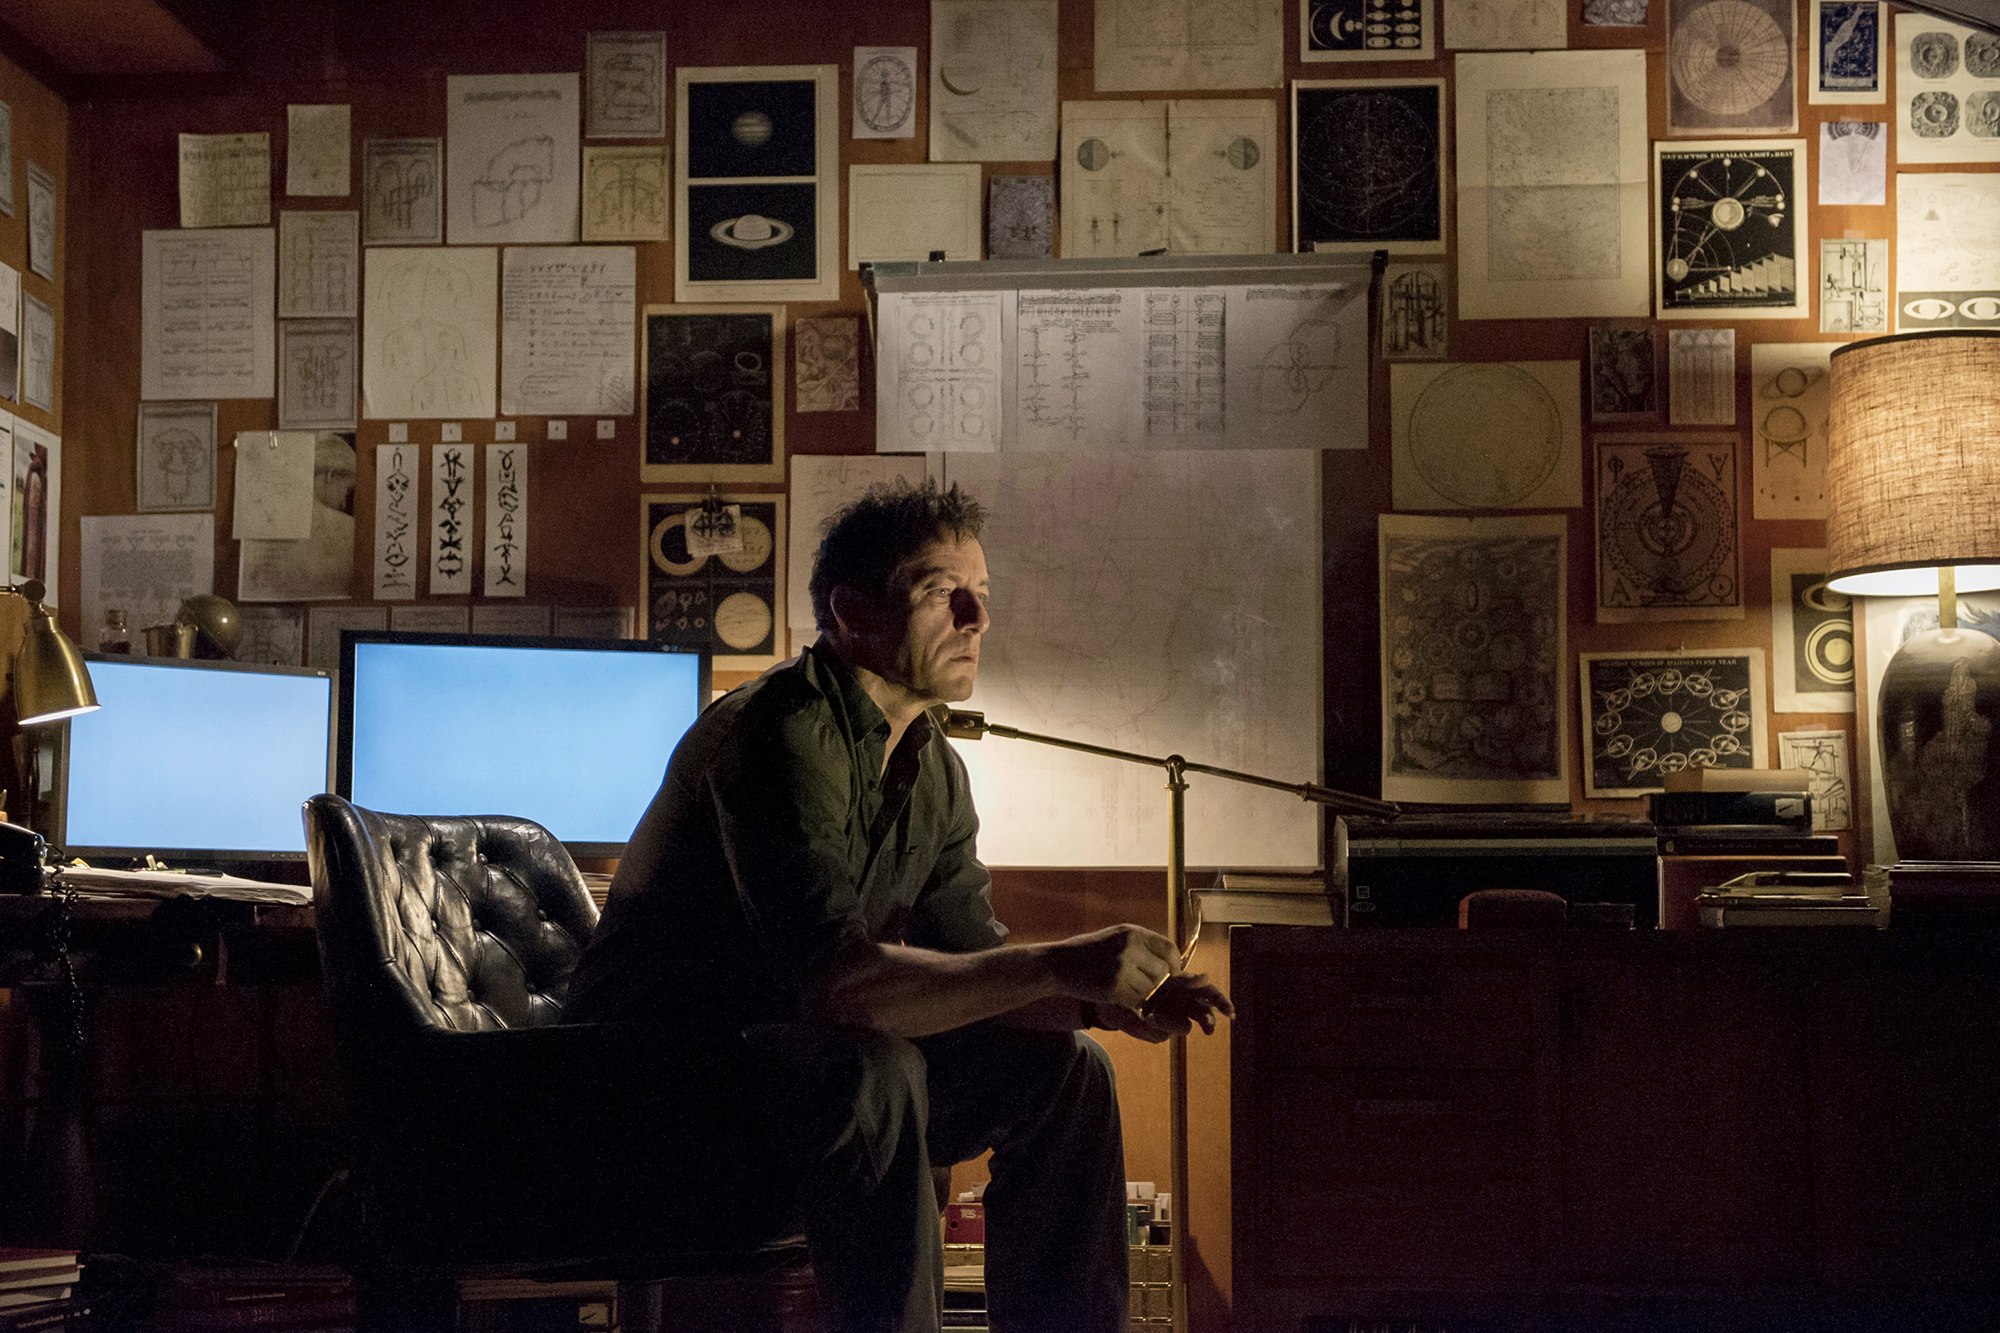 Jason Isaacs sits on a chair in a room lined with newspaper clippings on the walls